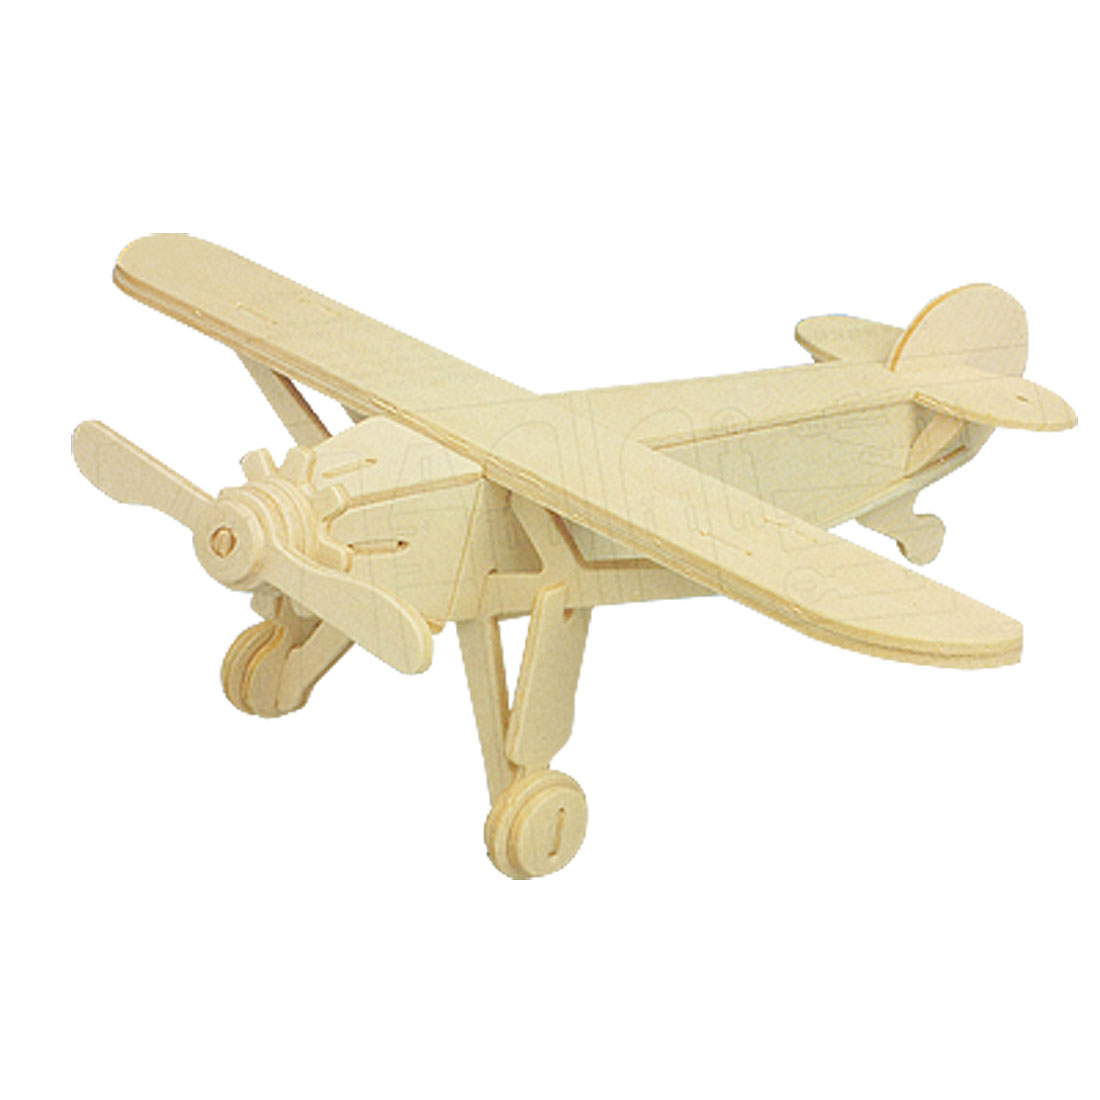 Child 3D Wood Craft Wooden Louis Plane Model Construction Kit Puzzle Toy Gift